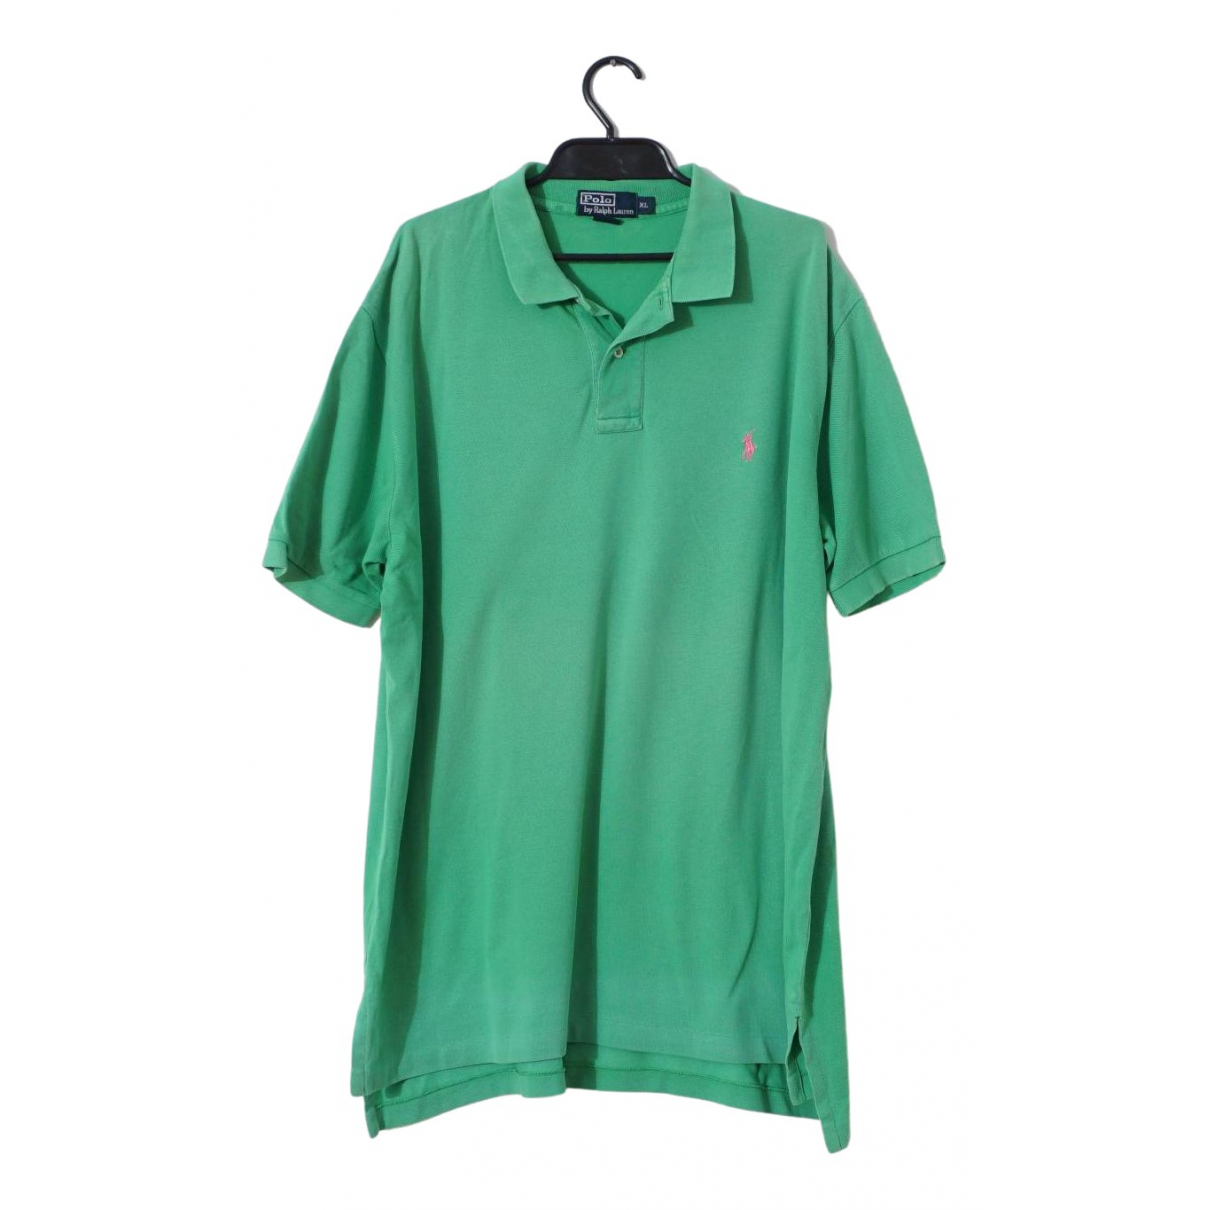 Polo Ralph Lauren Polo classique manches courtes Poloshirts in  Gruen Baumwolle